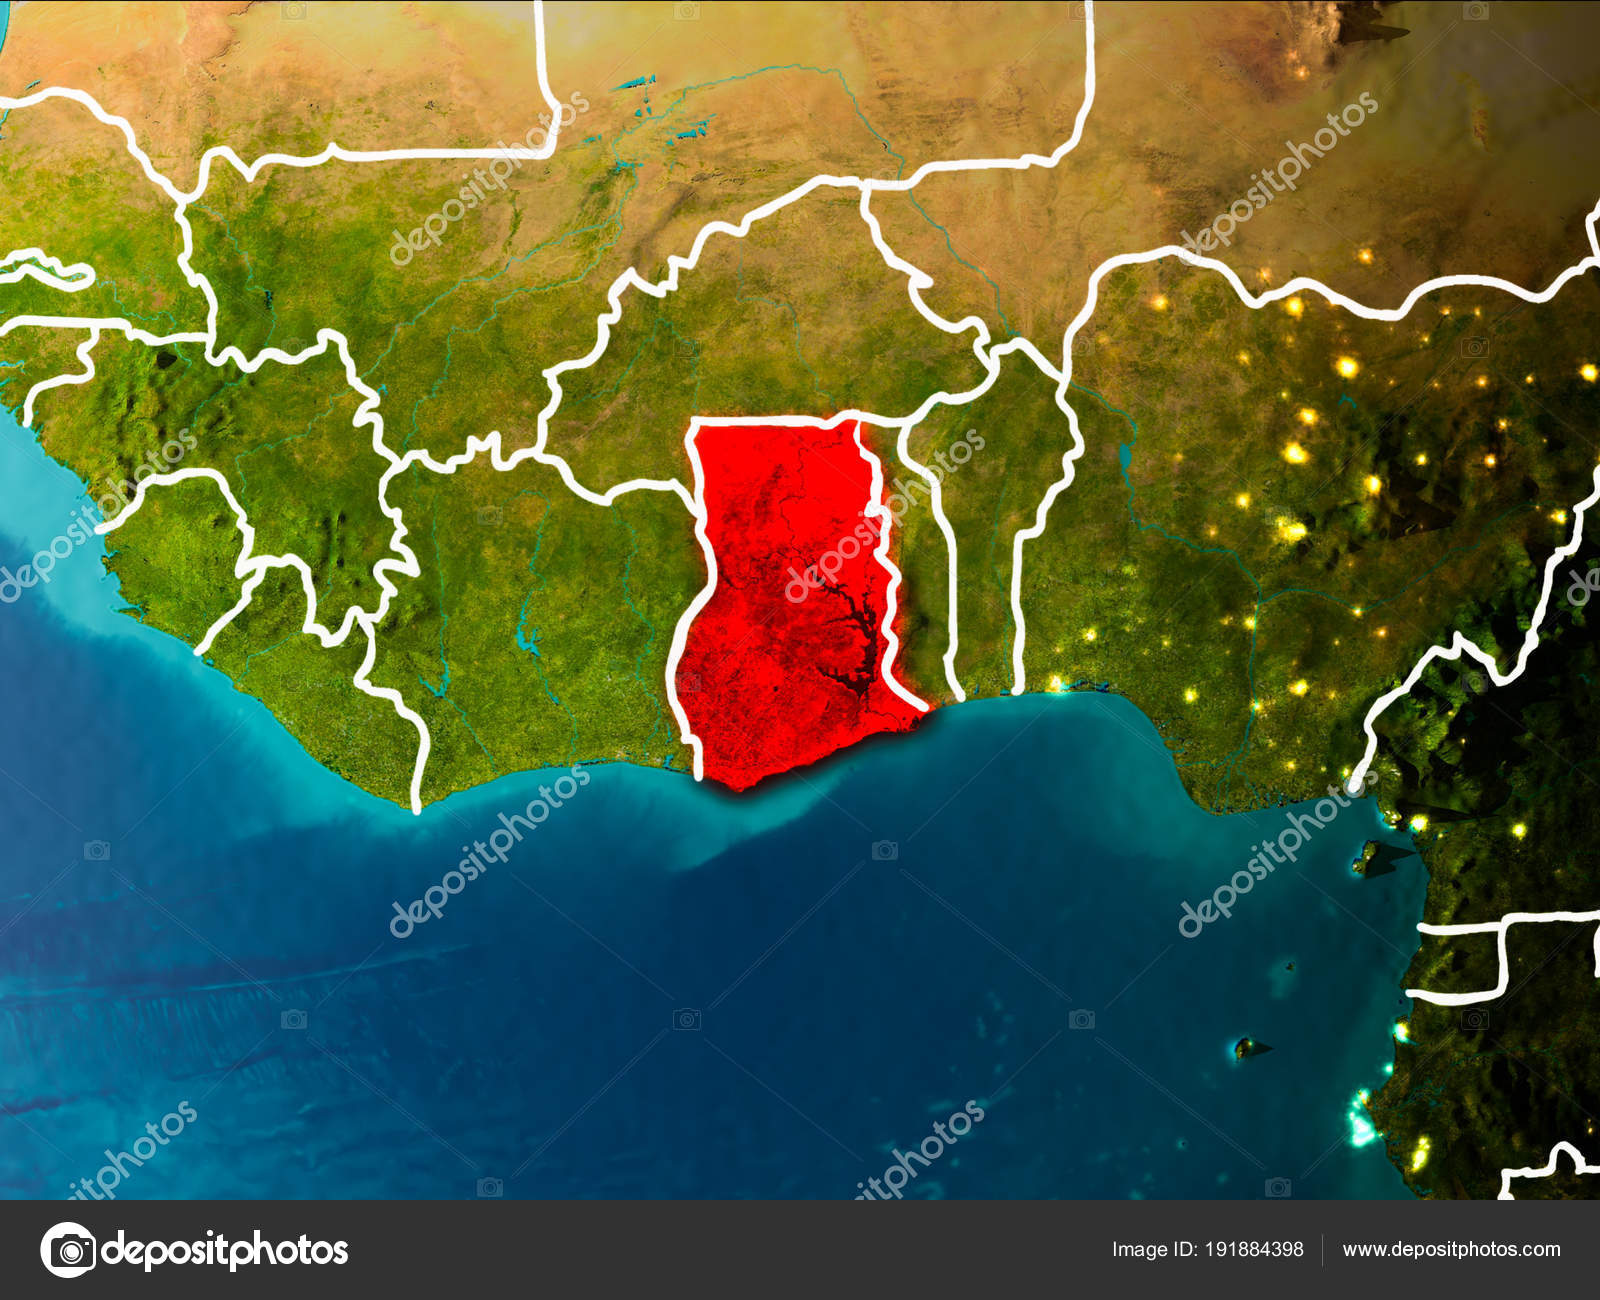 Map of Ghana on Earth — Stock Photo © tom.griger #191884398 Ghana On Map on mauritania on map, nepal on map, guatemala on map, west africa map, borneo on map, egypt on map, belize on map, mali on map, madagascar on map, liberia on map, hungary on map, brazil on map, cuba on map, benin on map, zimbabwe on map, italy on map, indonesia on map, the gambia on map, nigeria on map, thailand on map,